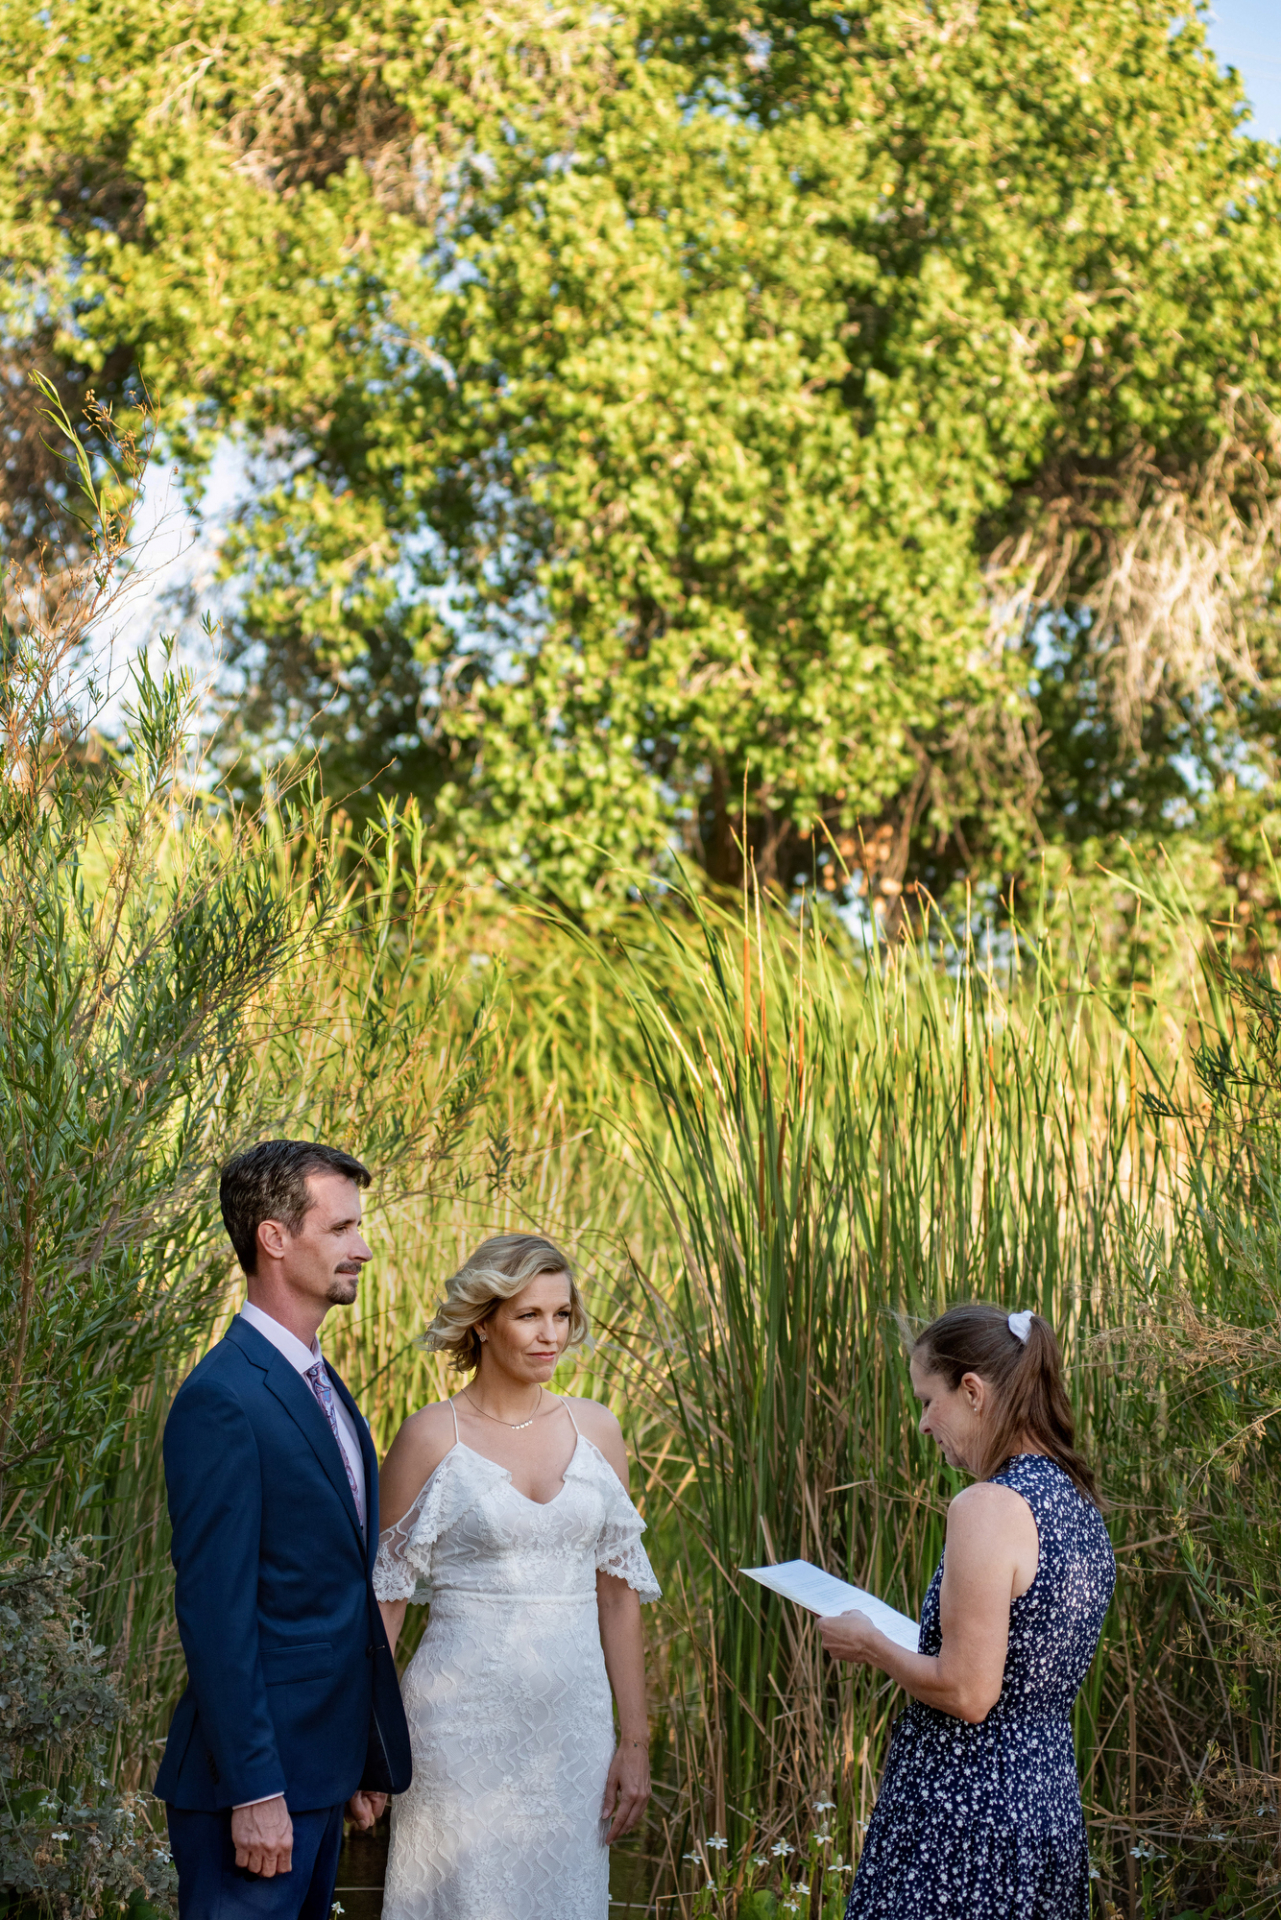 Desert Botanical Garden Wedding Ceremony Picture | Surrounded by tall grasses and illuminated by the warm glow of the Arizona sun